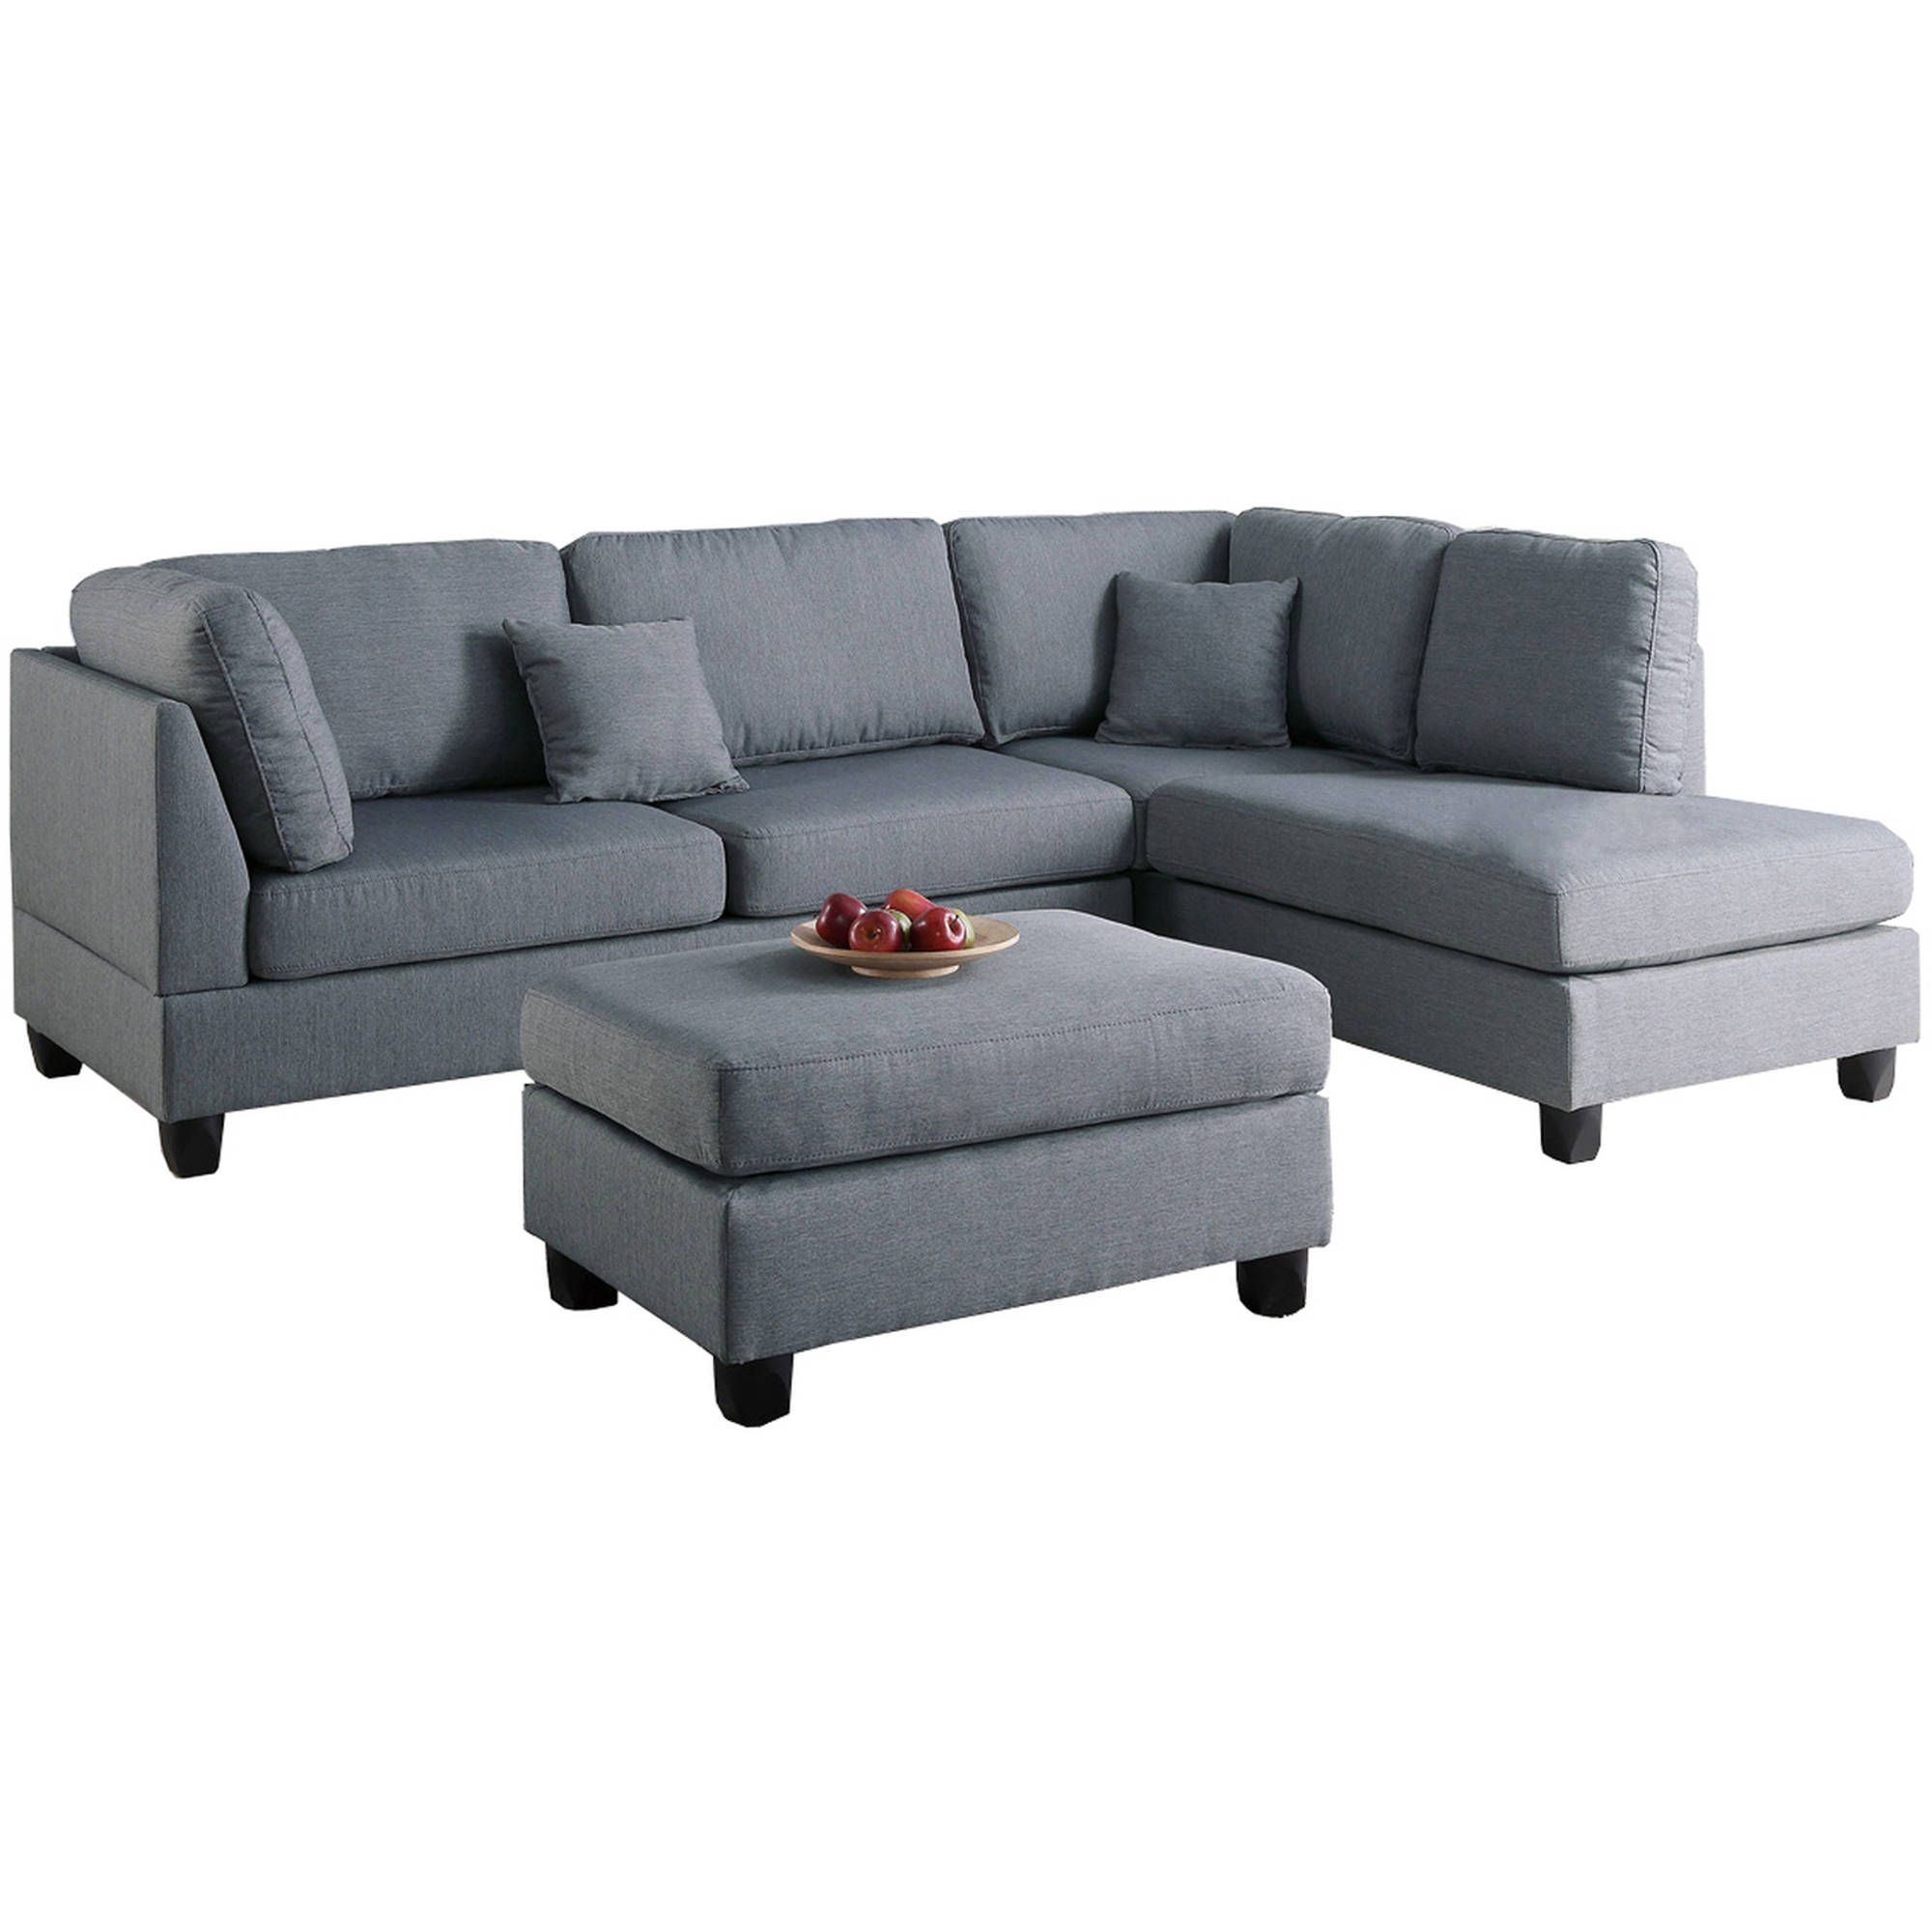 Couch Billig Billige Couch Mit Perfect Full Size Of Design Vincenza